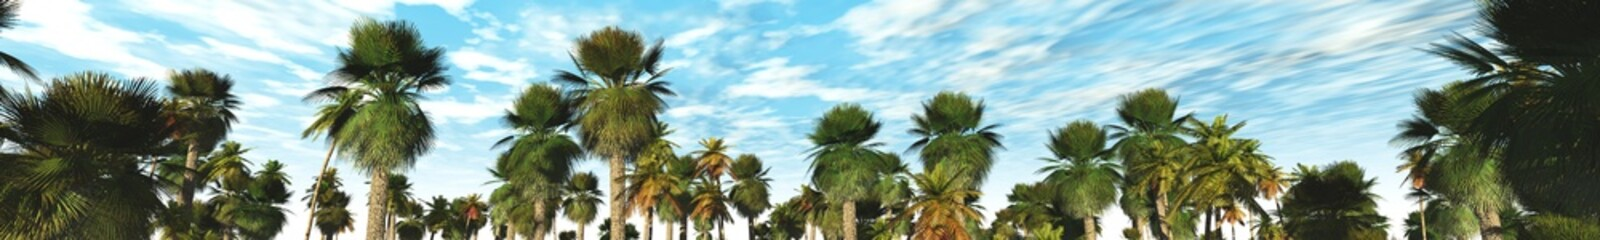 palm grove, panorama, 3D rendering. Palm trees against the blue sky with clouds.